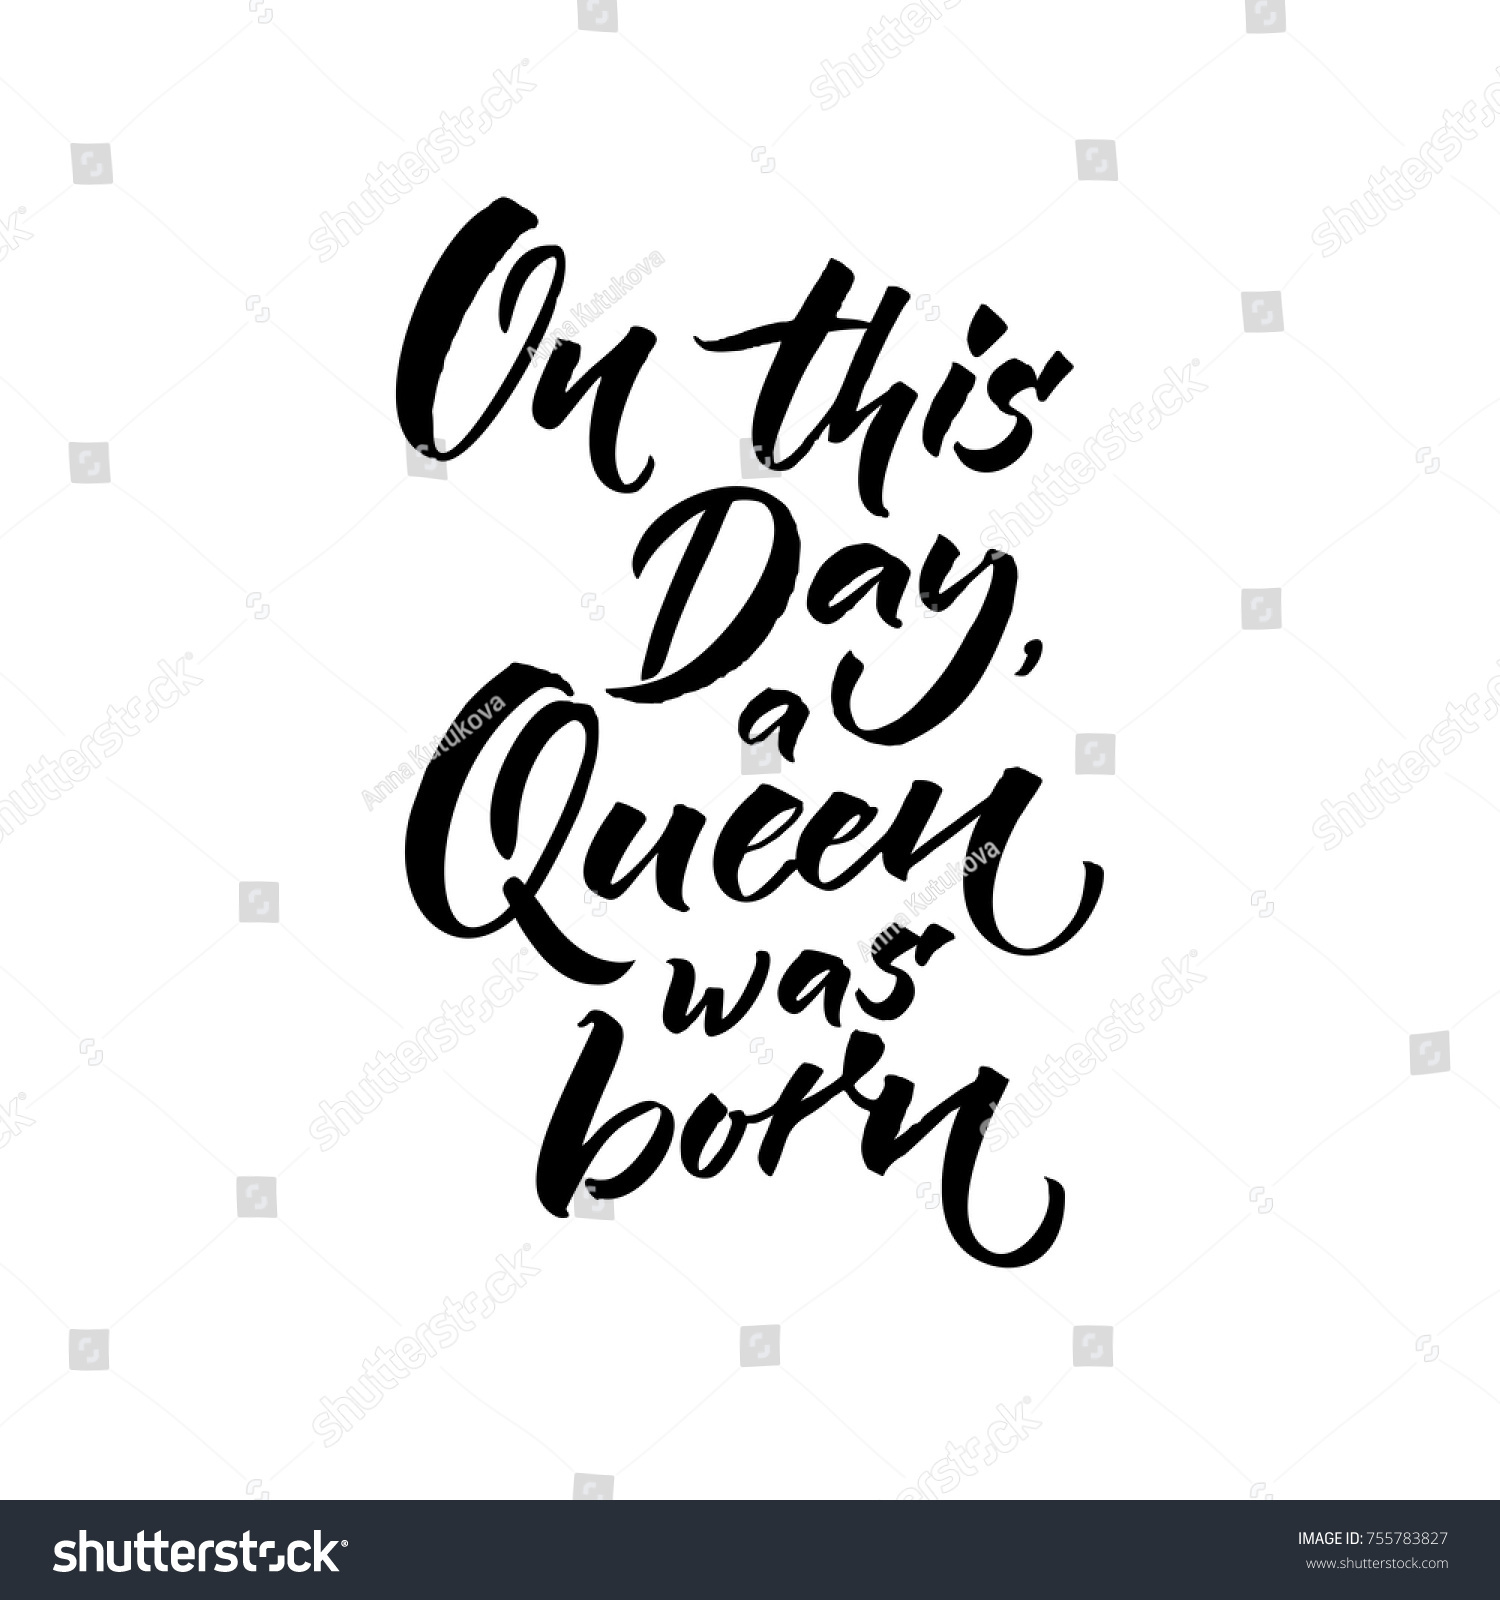 happy birthday black queen ; stock-vector-on-this-day-a-queen-was-born-happy-birthday-text-for-greeting-card-brush-calligraphy-isolated-on-755783827